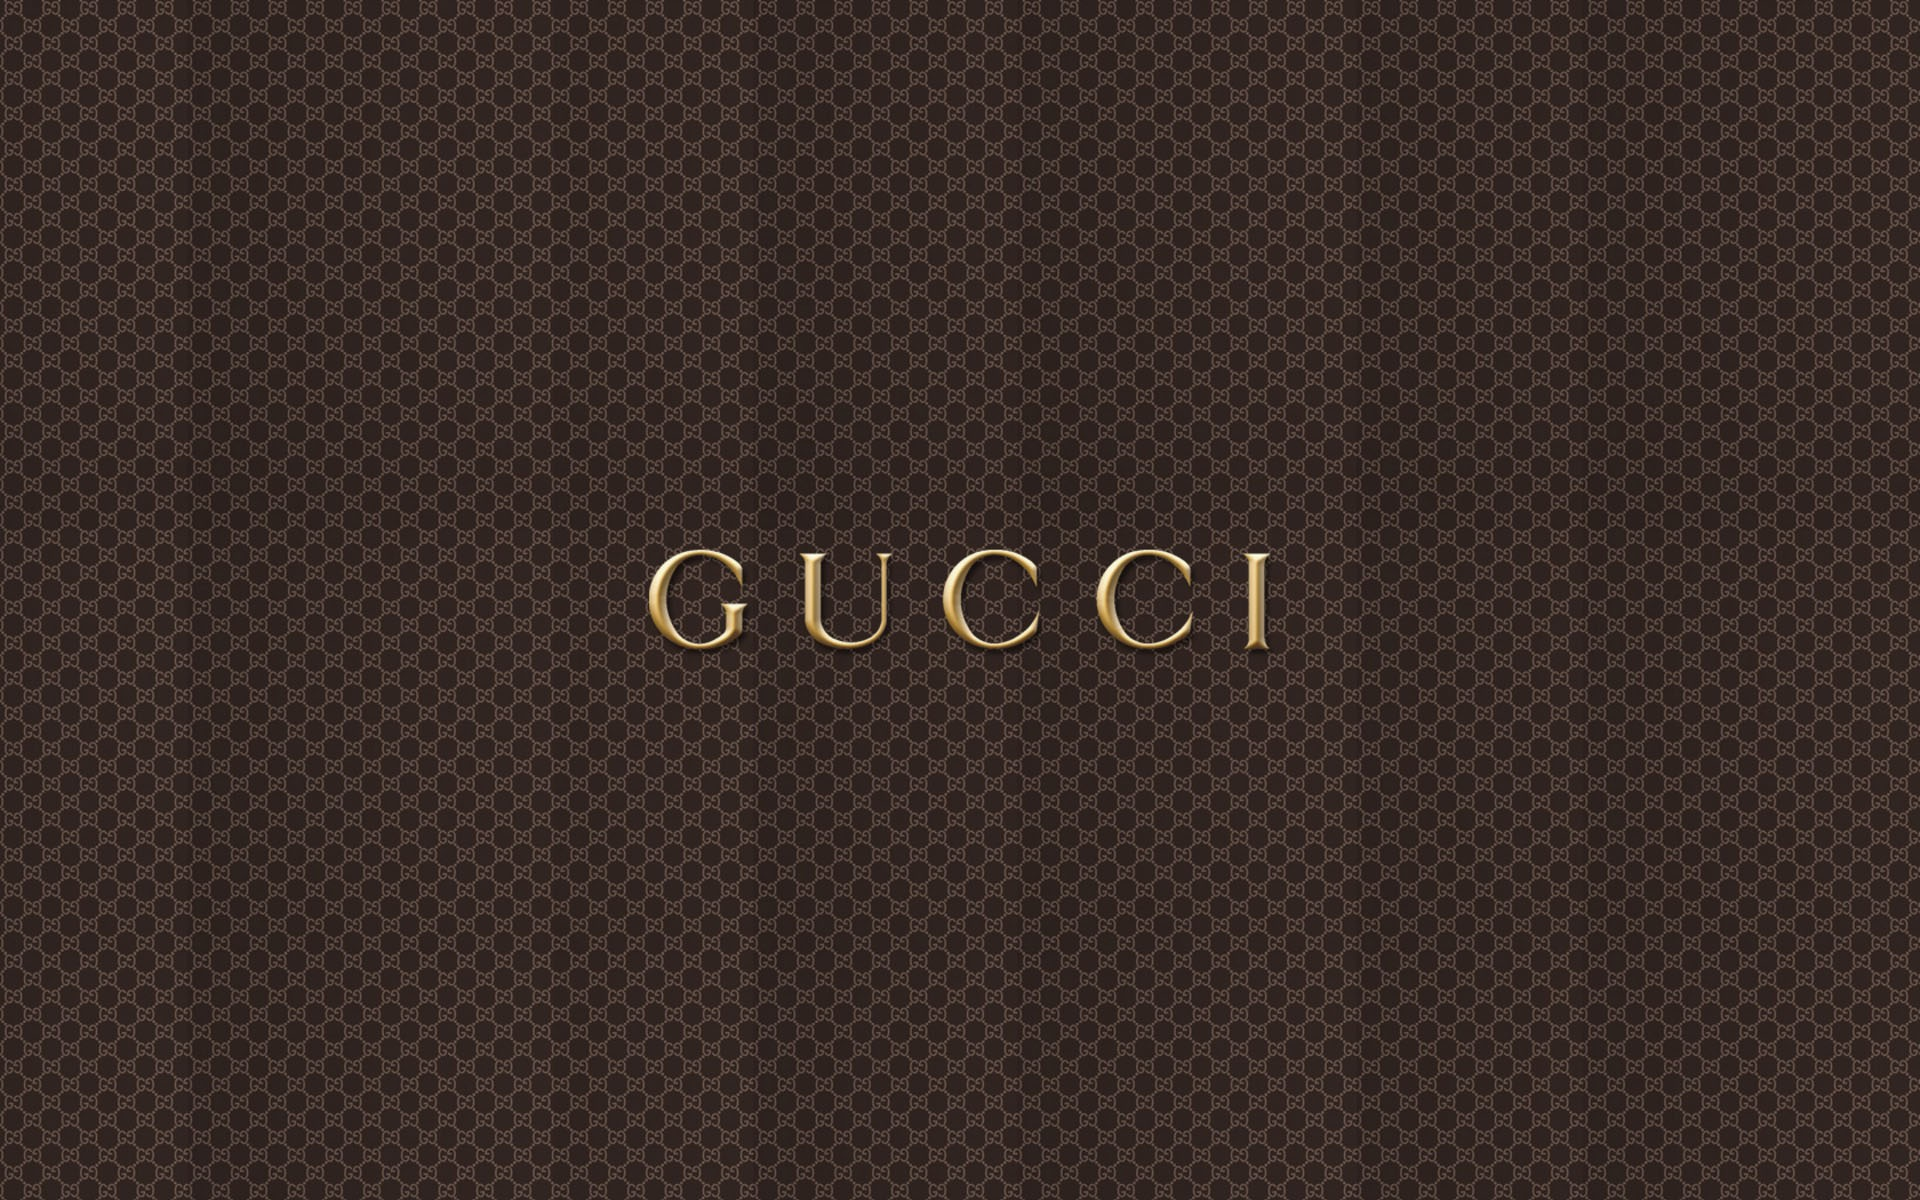 gucci wallpaper iphone 5 - photo #23